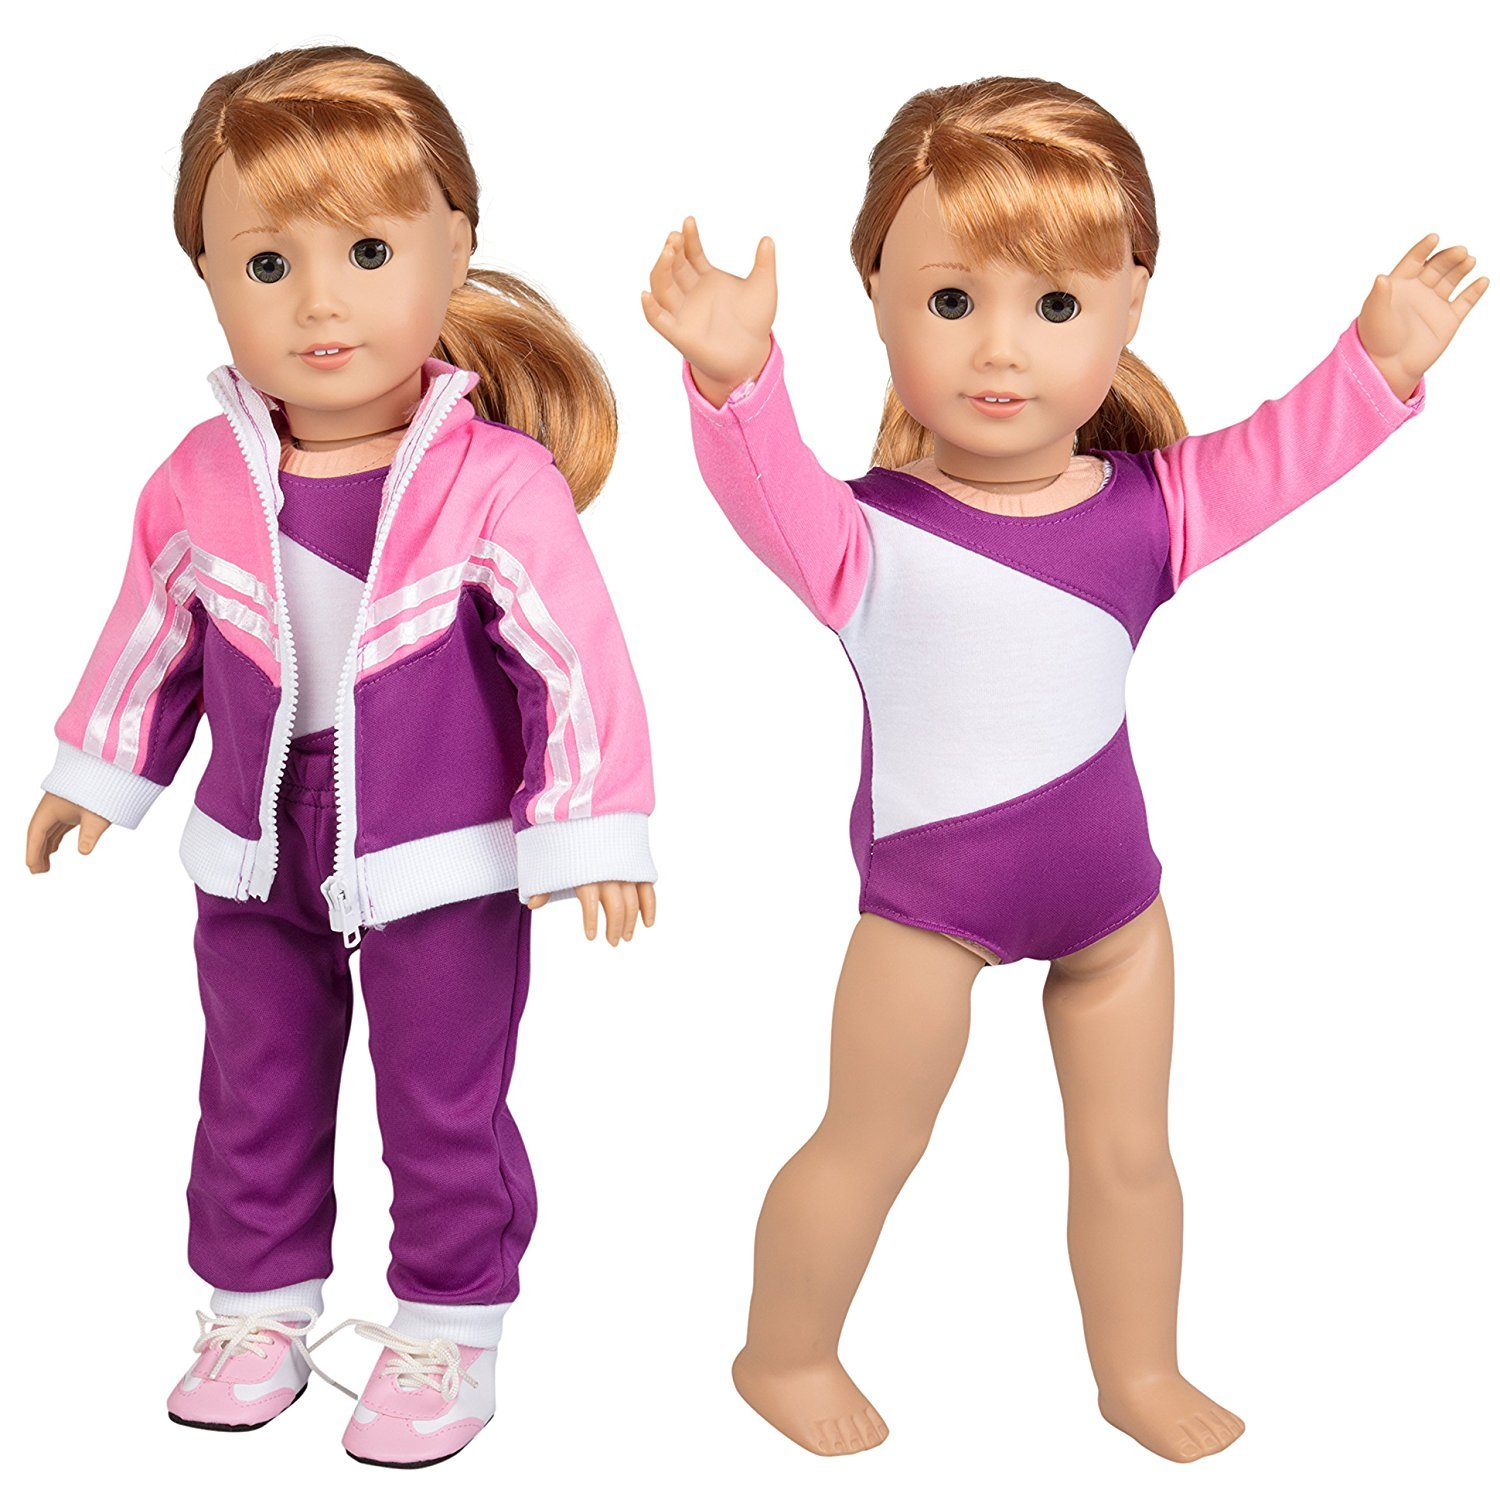 Doll Clothes for American Girl Dolls: 4 Piece Gymnastics Star Outfit - Dress Along Dolly (Includes Performance Leotard, Warmup Pants, Pullover, and Sneakers) Ride Along Dolly